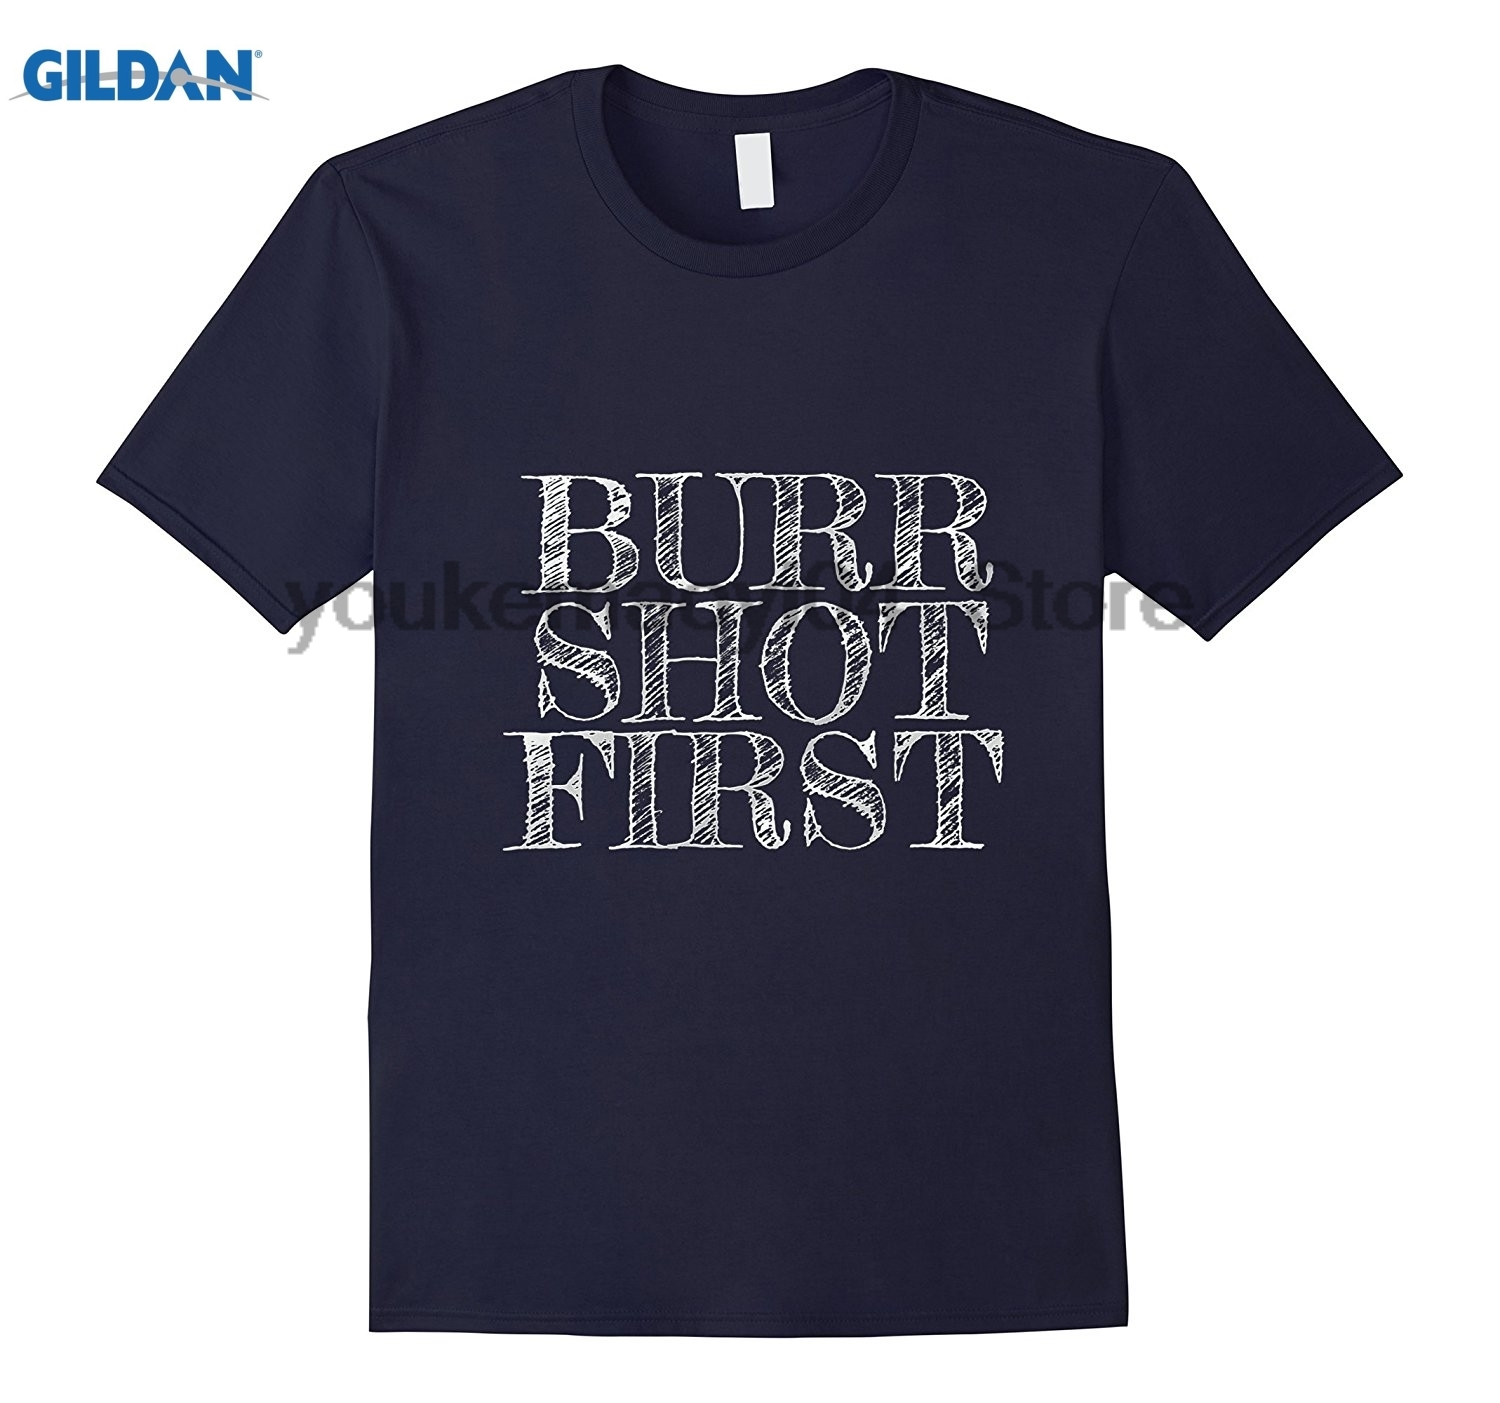 GILDAN Burr Shot First Alexander Fan T Shirts